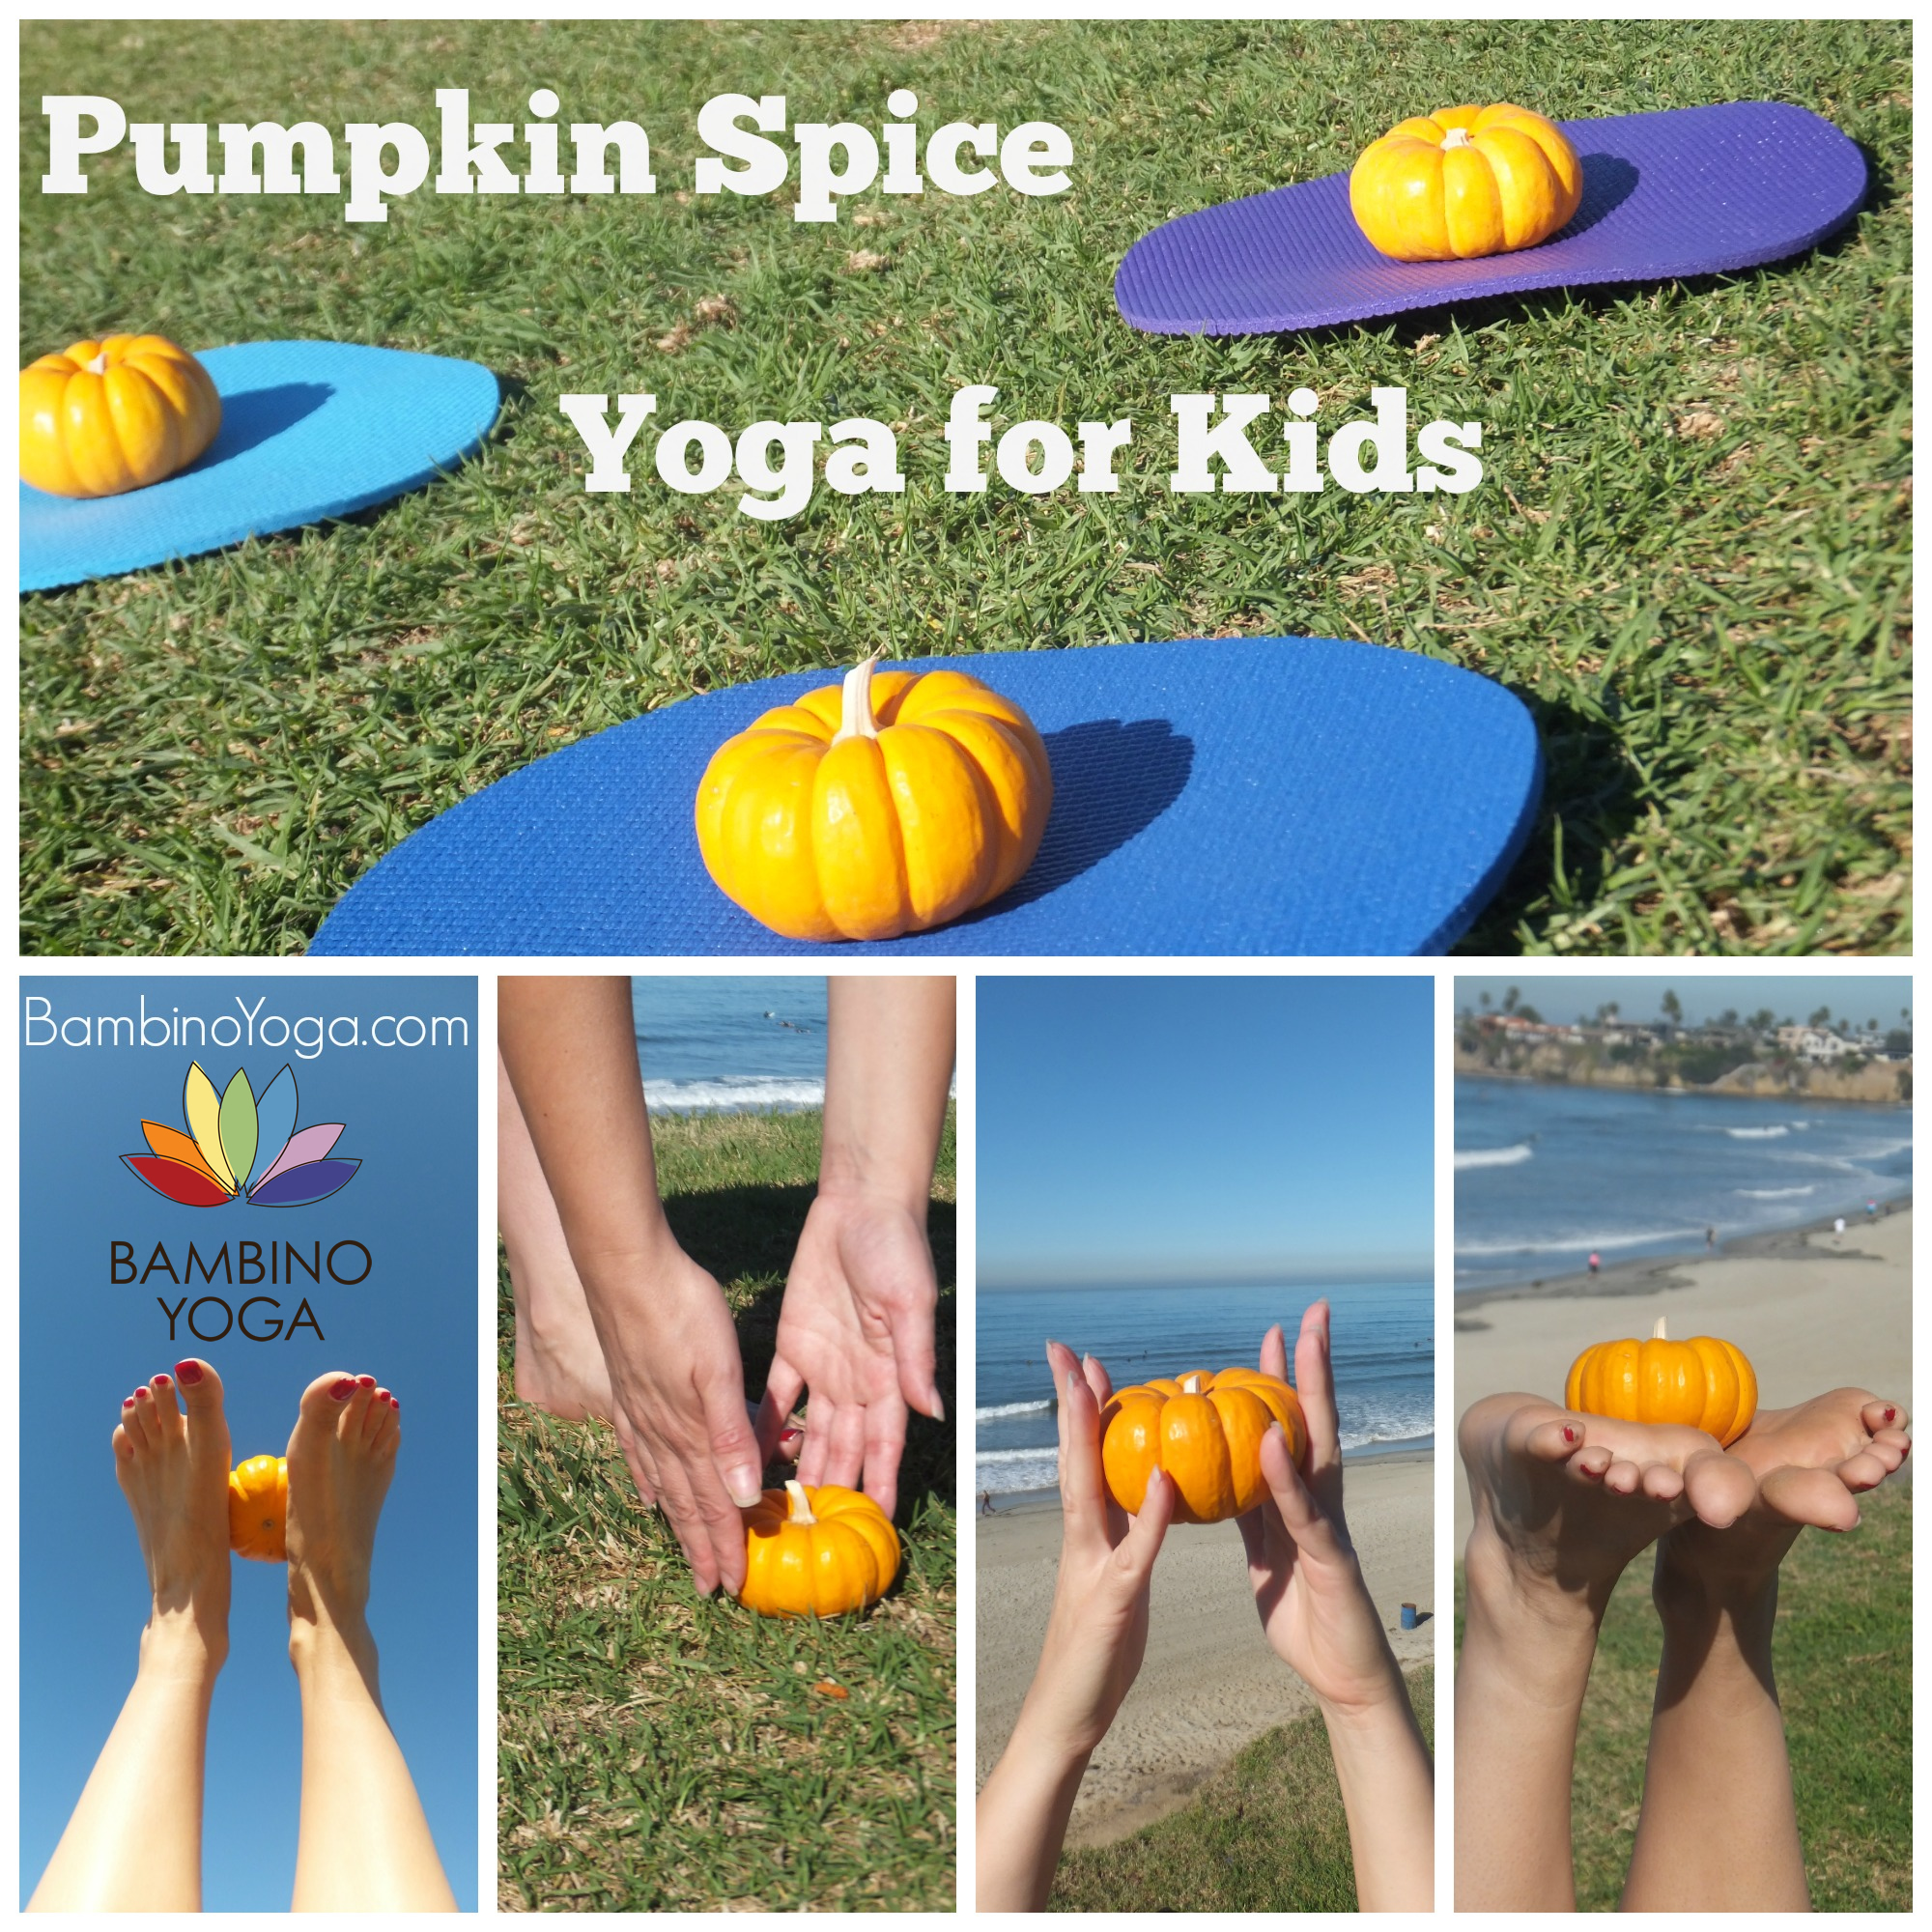 Pumpkin Spice Yoga For Kids